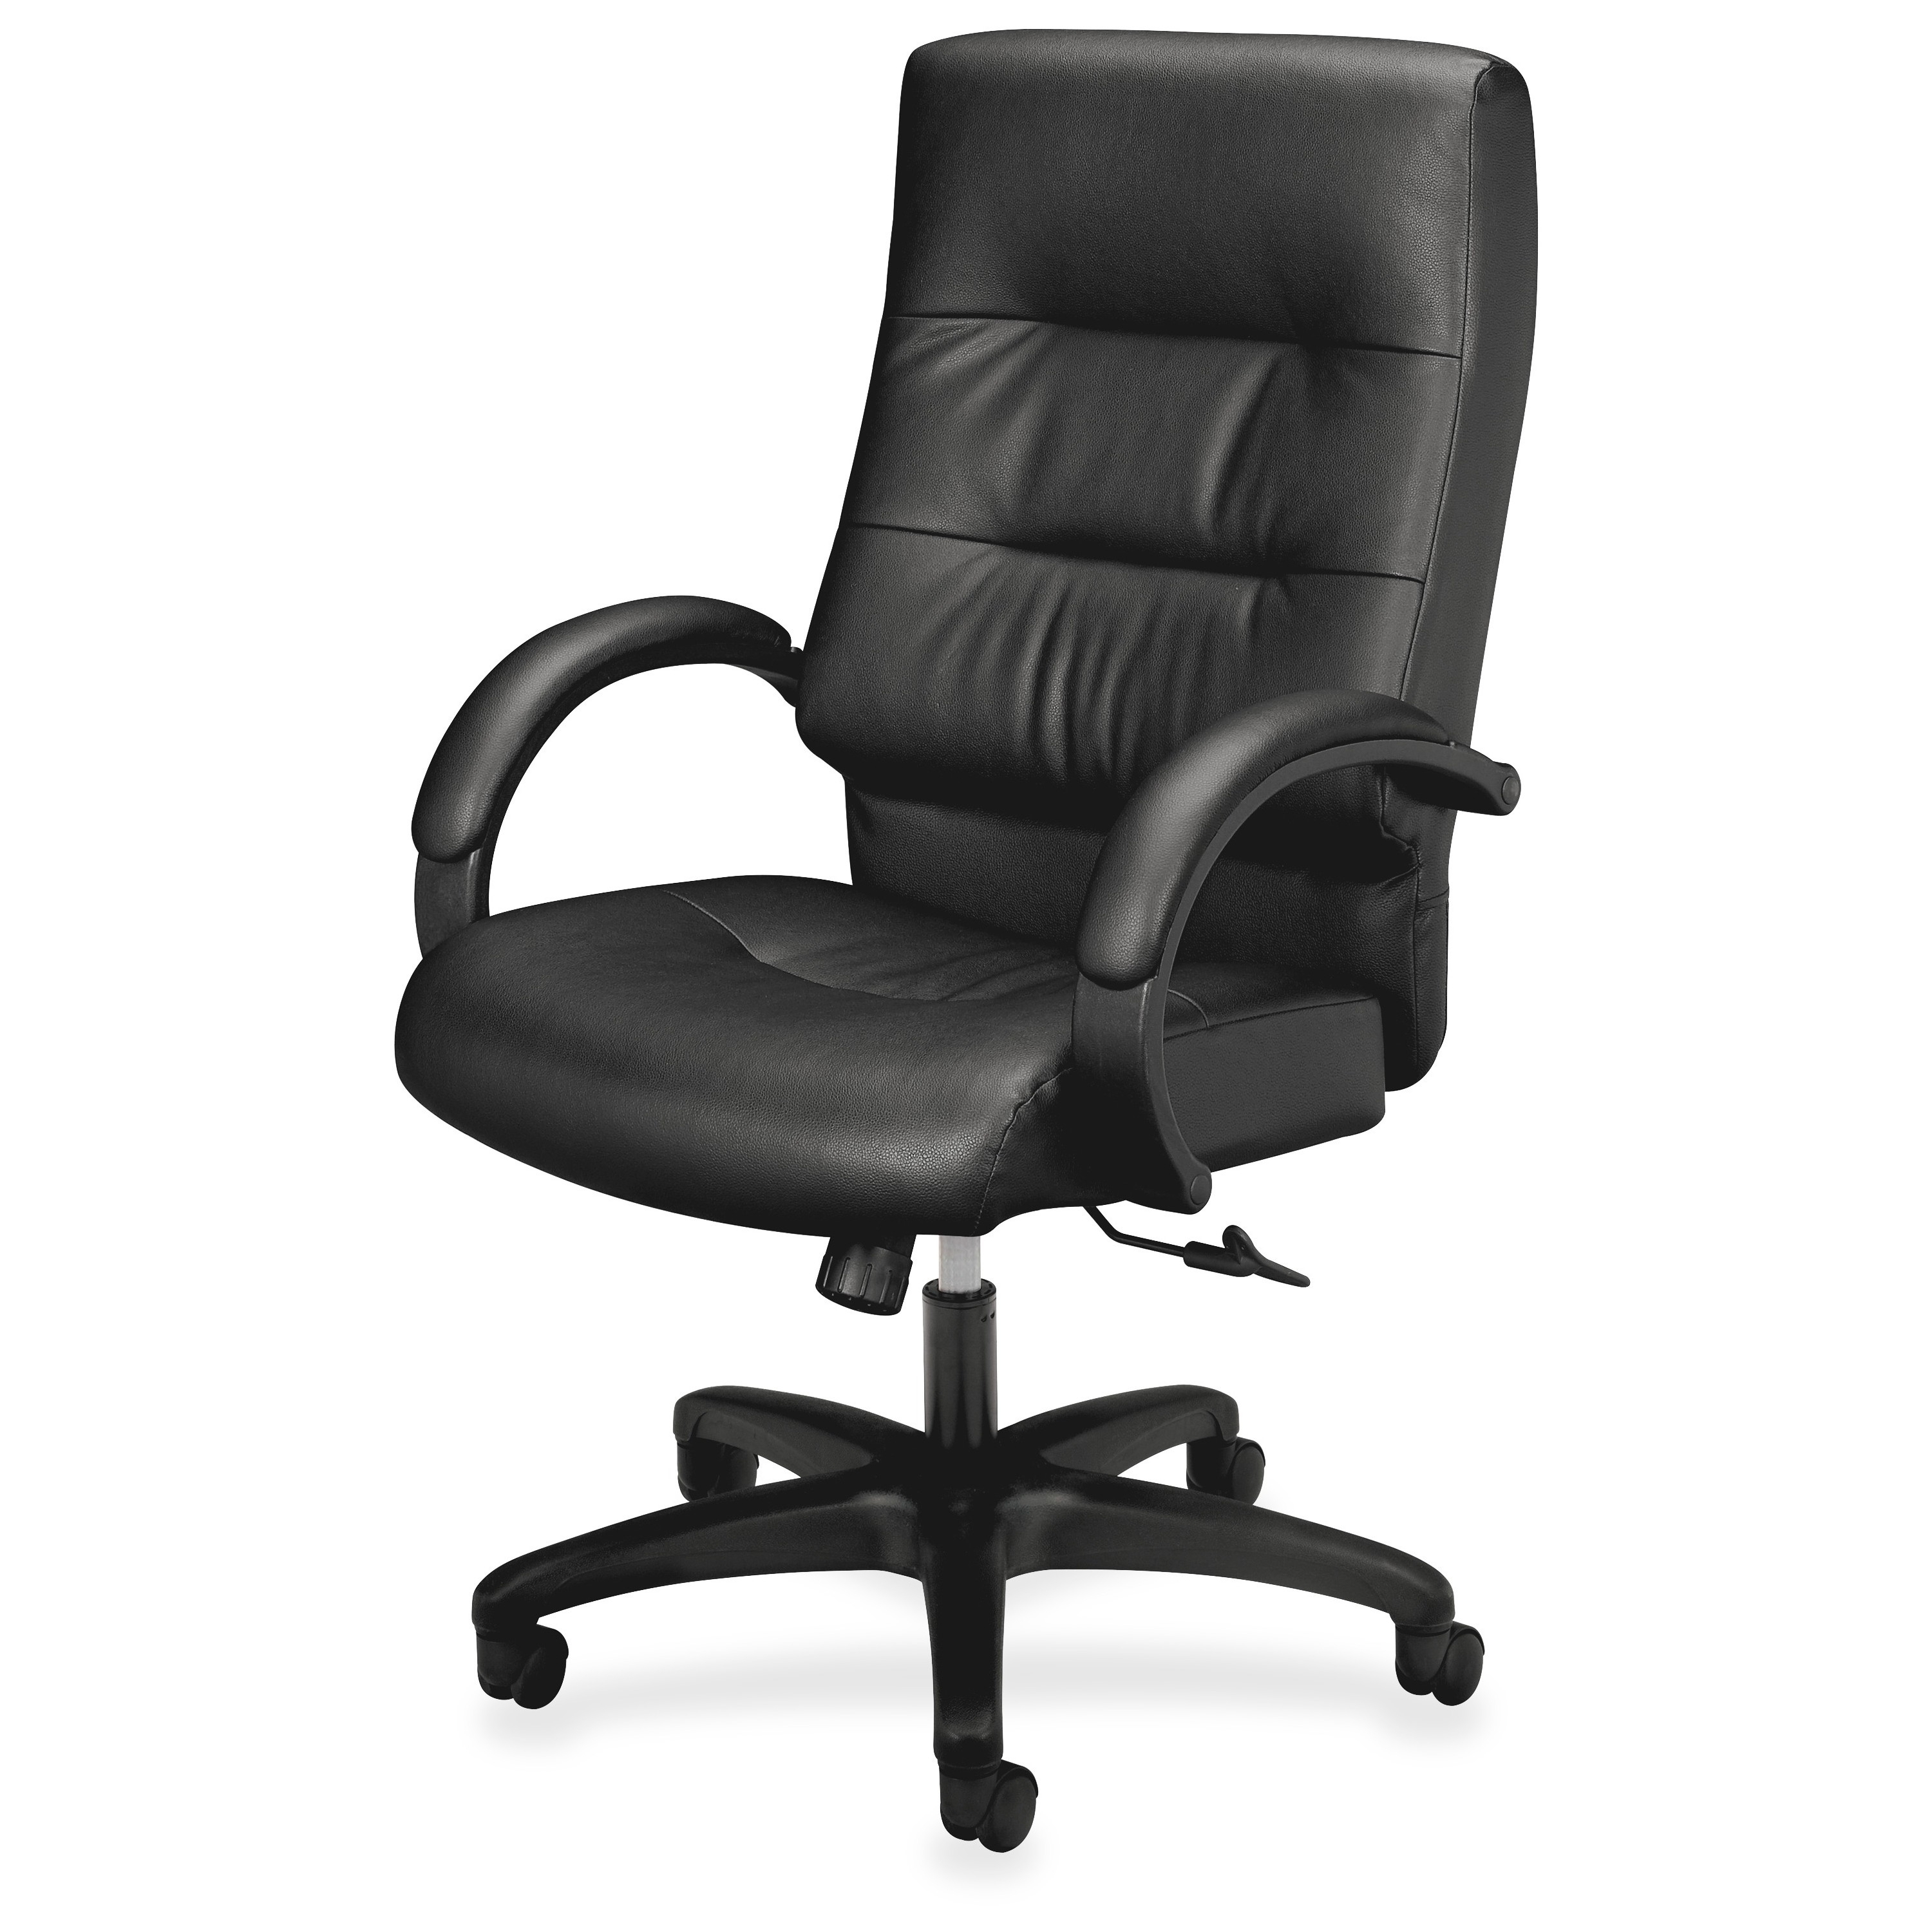 Best And Newest Bsxvl691Sb11 Basyxhon Hvl691 Executive High Back Chair For Hon Executive Office Chairs (View 3 of 20)